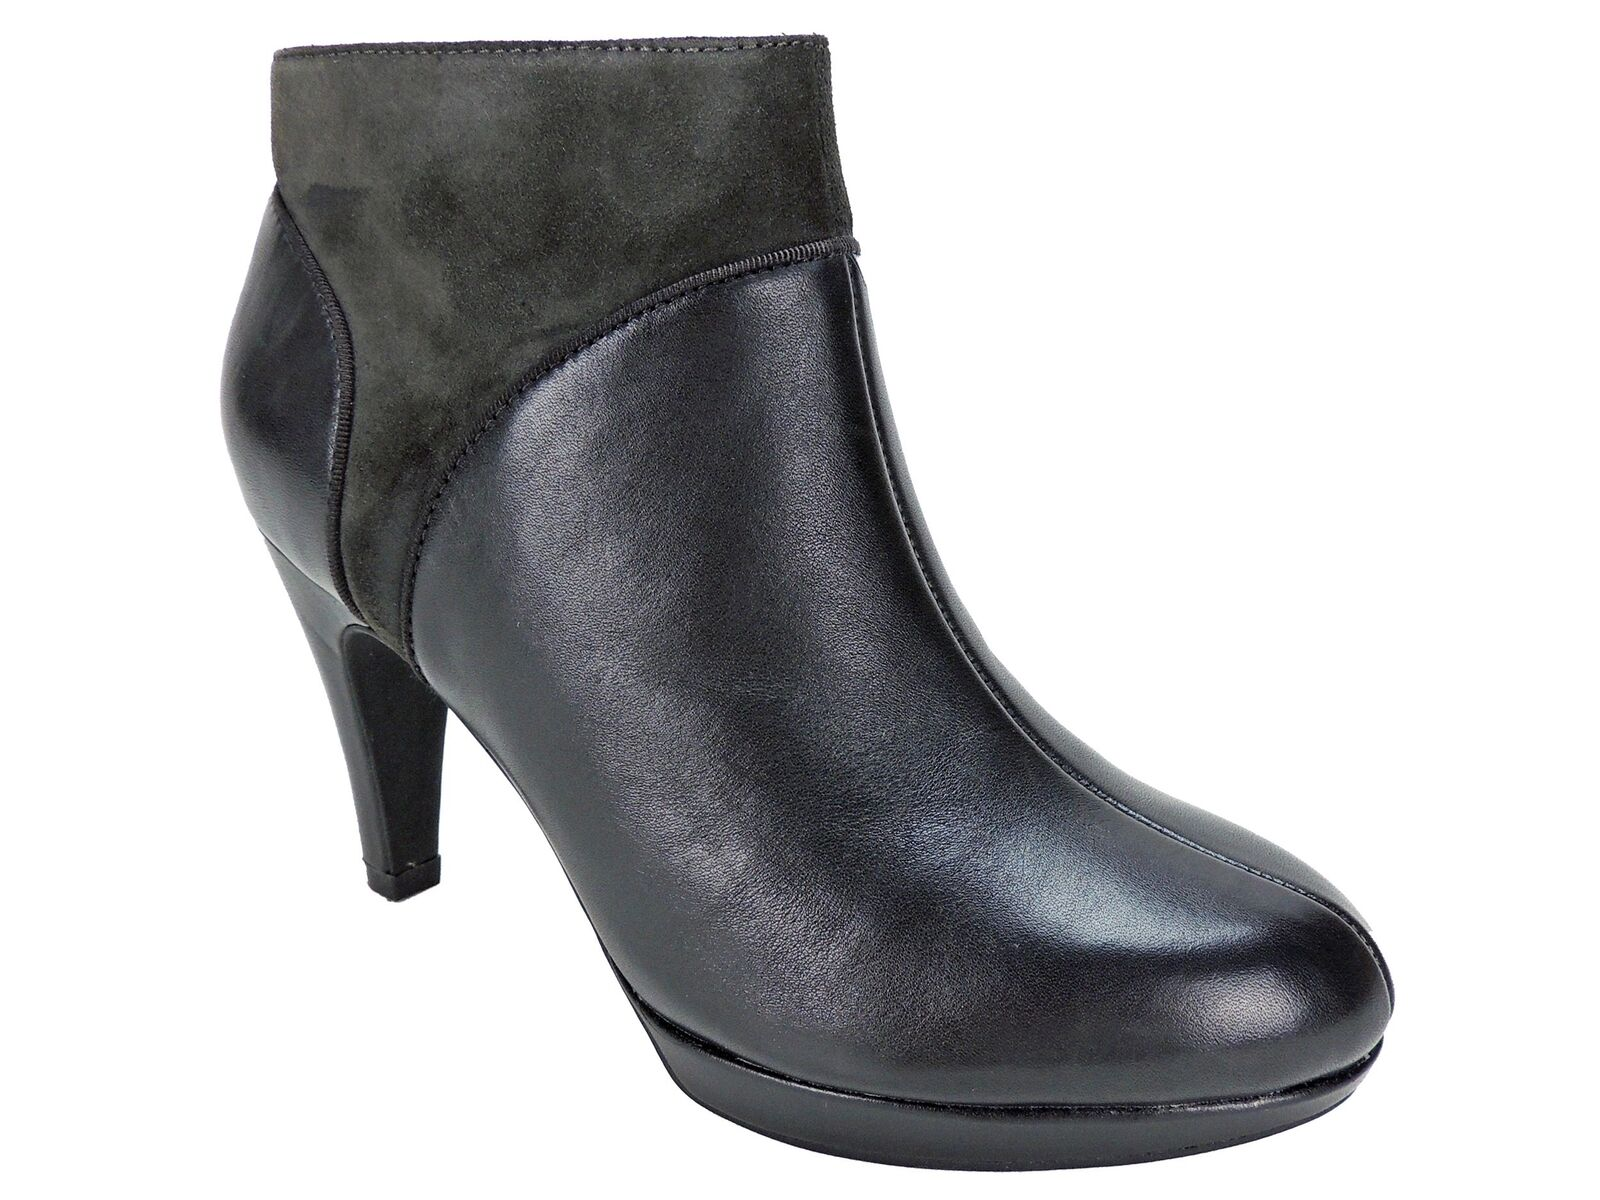 Clarks Women's Narine Nellie Platform Booties Grey Charcoal Leather Size 5.5 M